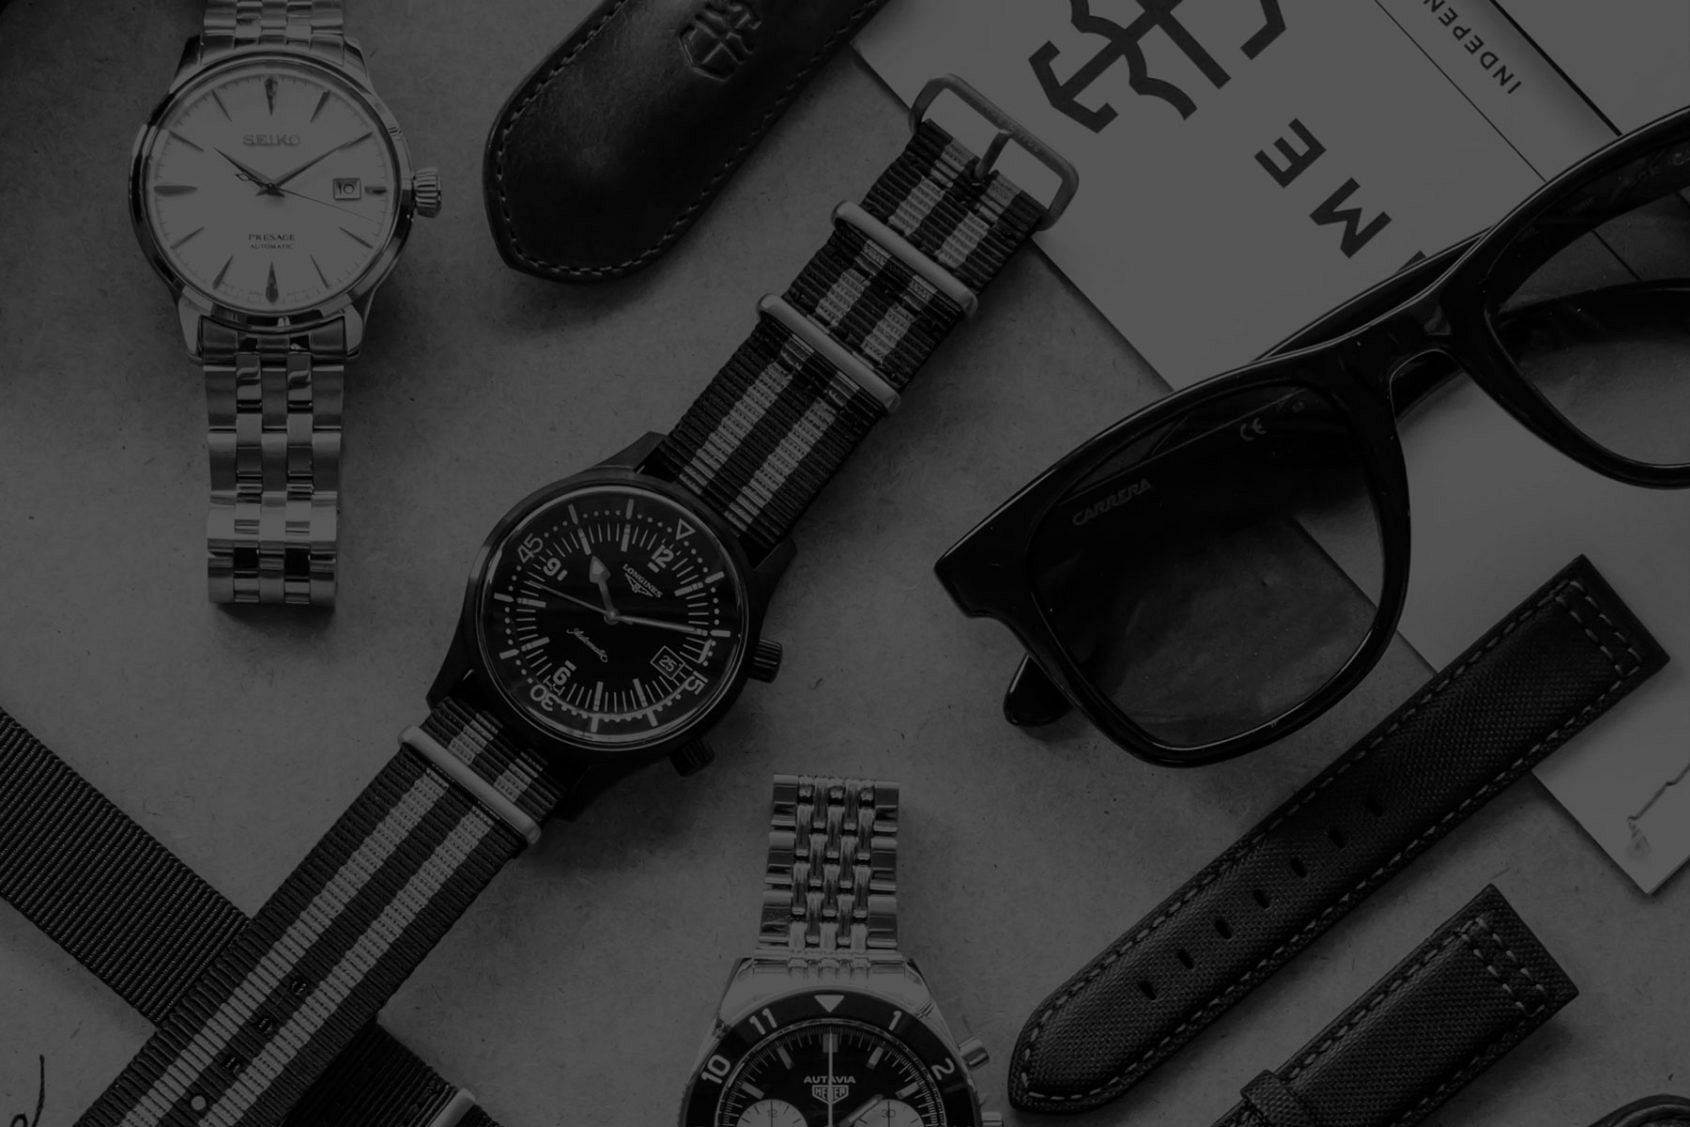 Holiday horology: 5 Christmas accessories to give any watch lover (or just buy for yourself)